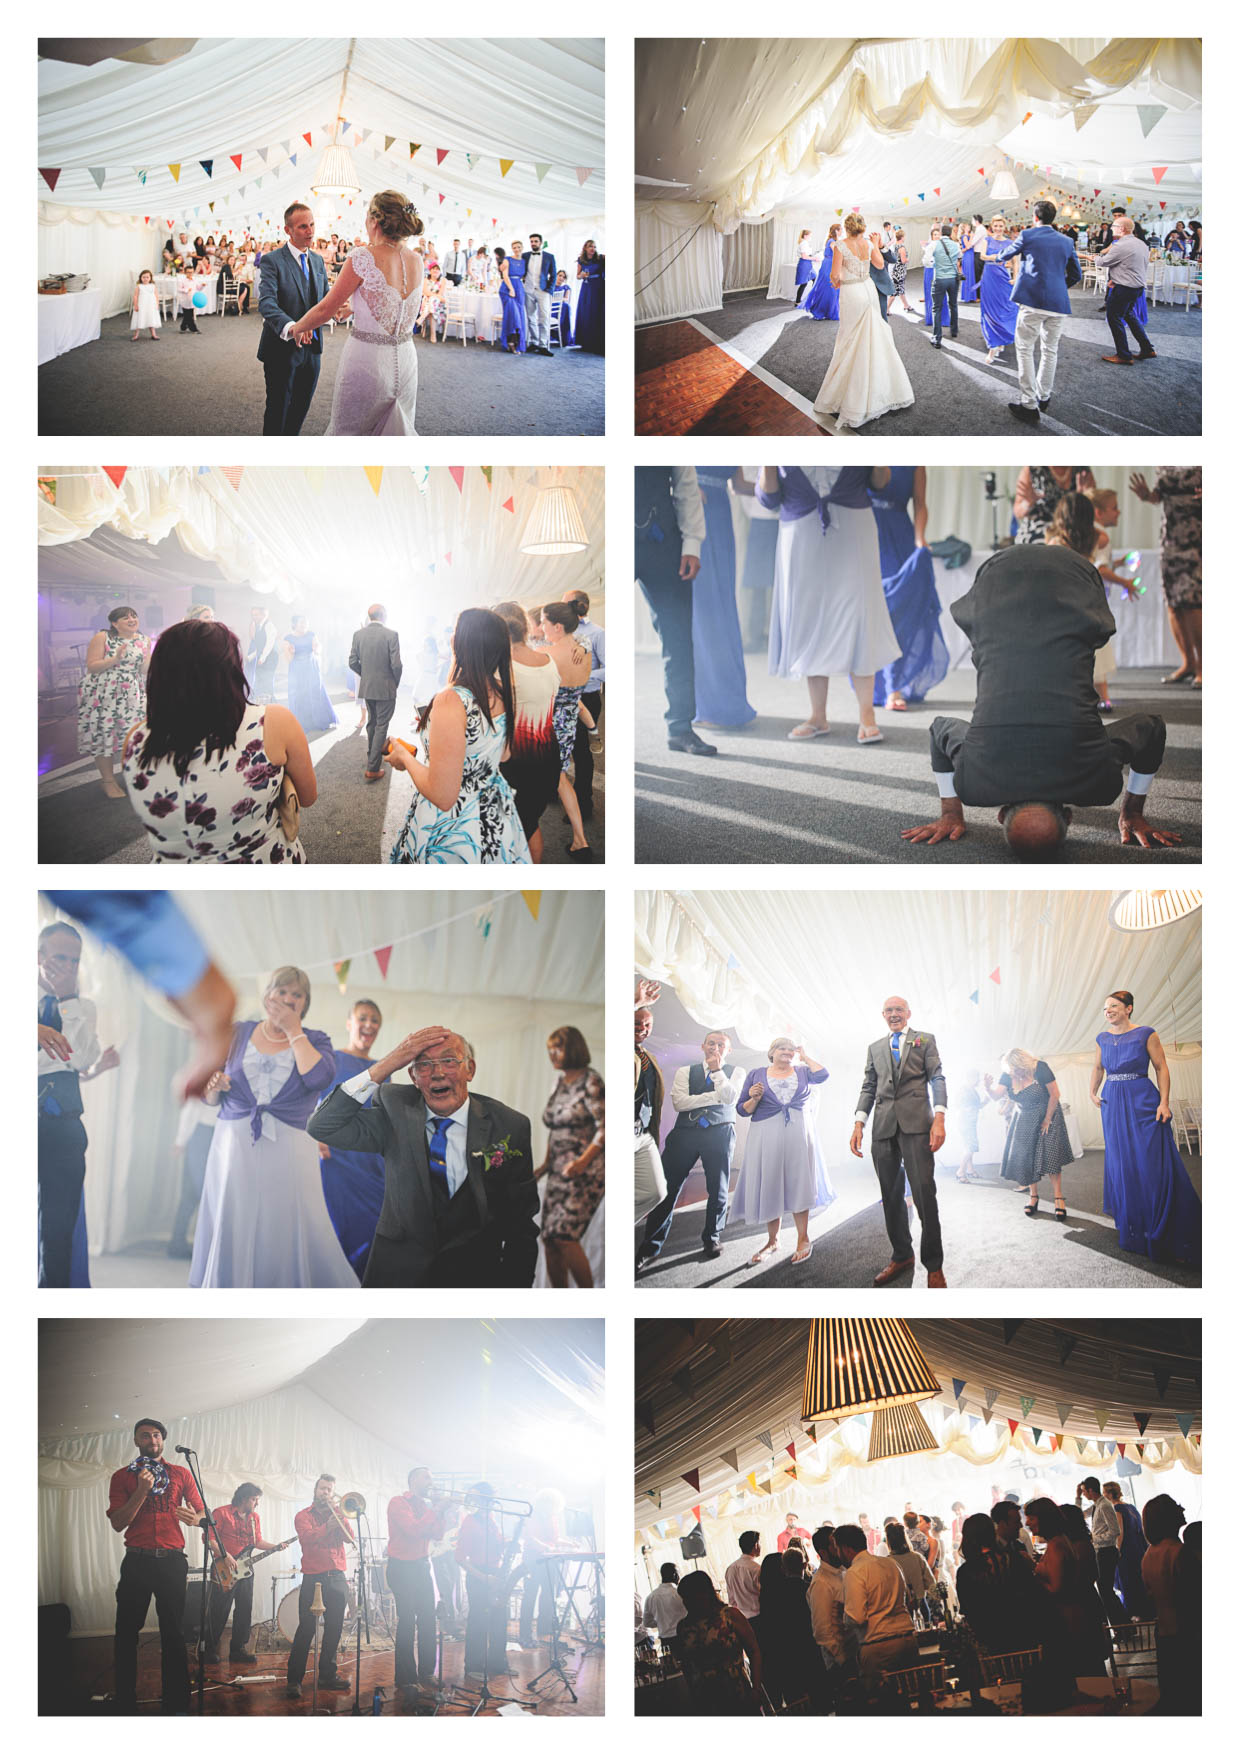 Photos of a party in the marquee of llanerch